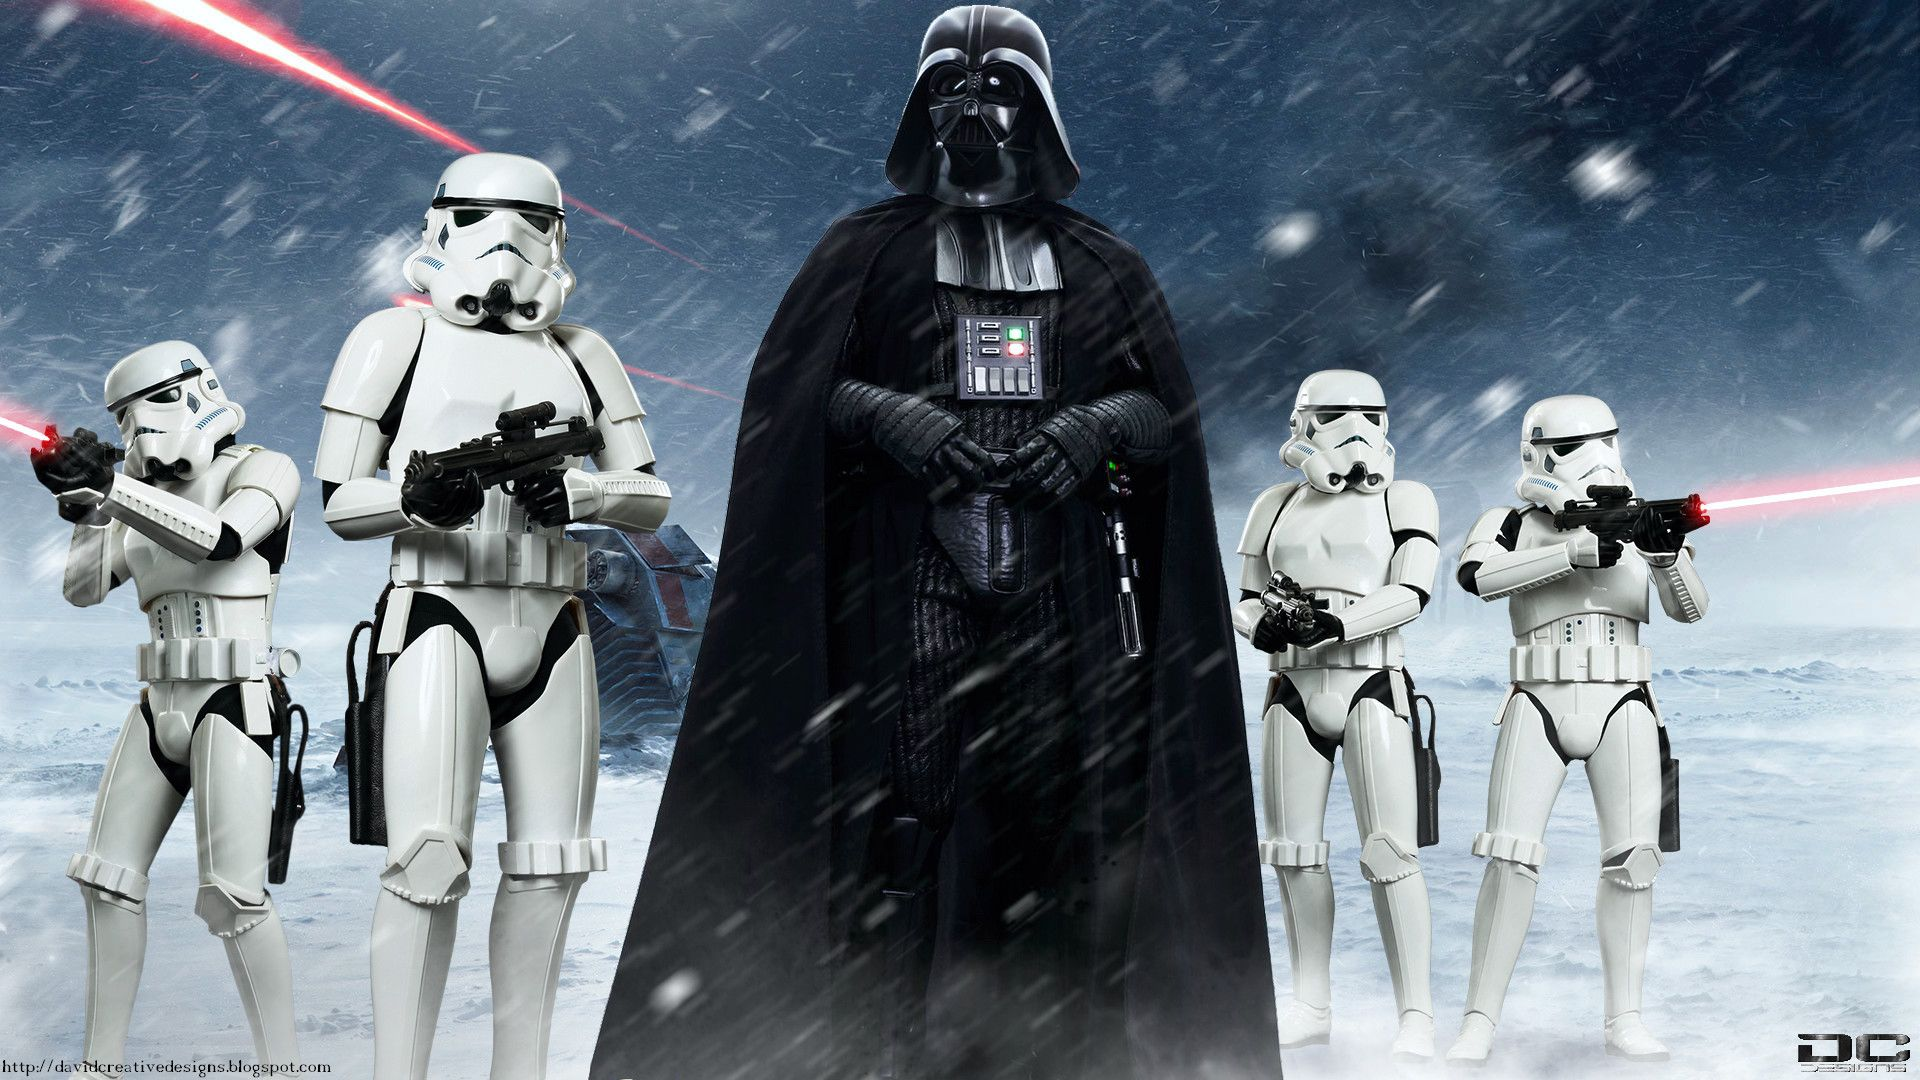 Res 1920x1080 Hd Wallpaper Background Image Id 569454 Darth Vader Wallpaper Star Wars Wallpaper Darth Vader